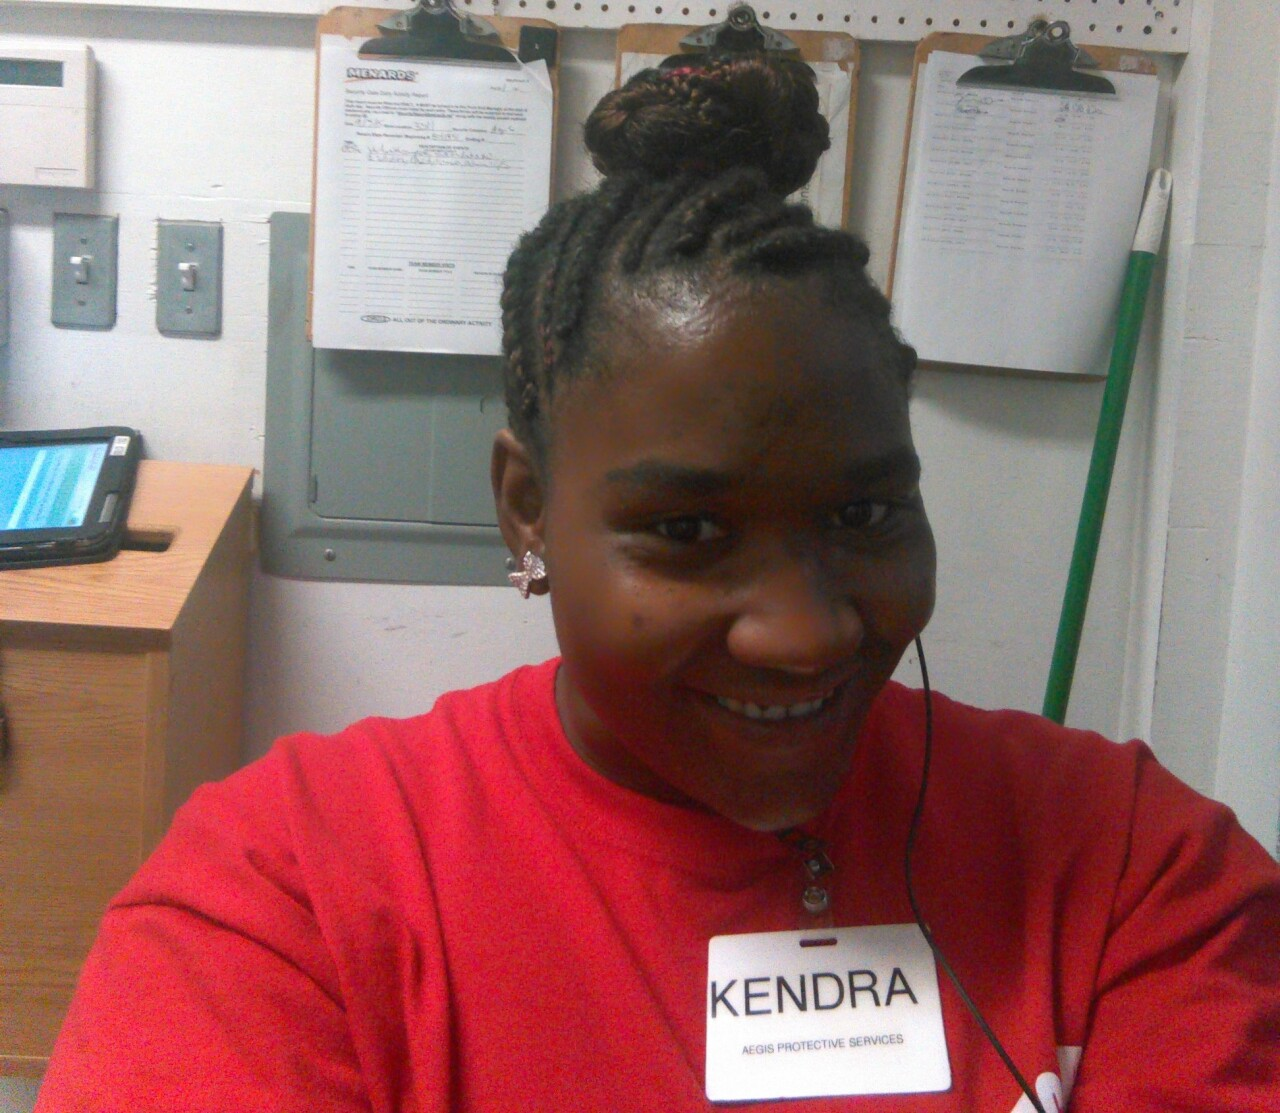 Kendra Davis smiles in this undated photo taken while she was at work. Her braided hair is wrapped in a bun atop her head, and she's wearing a red shirt.